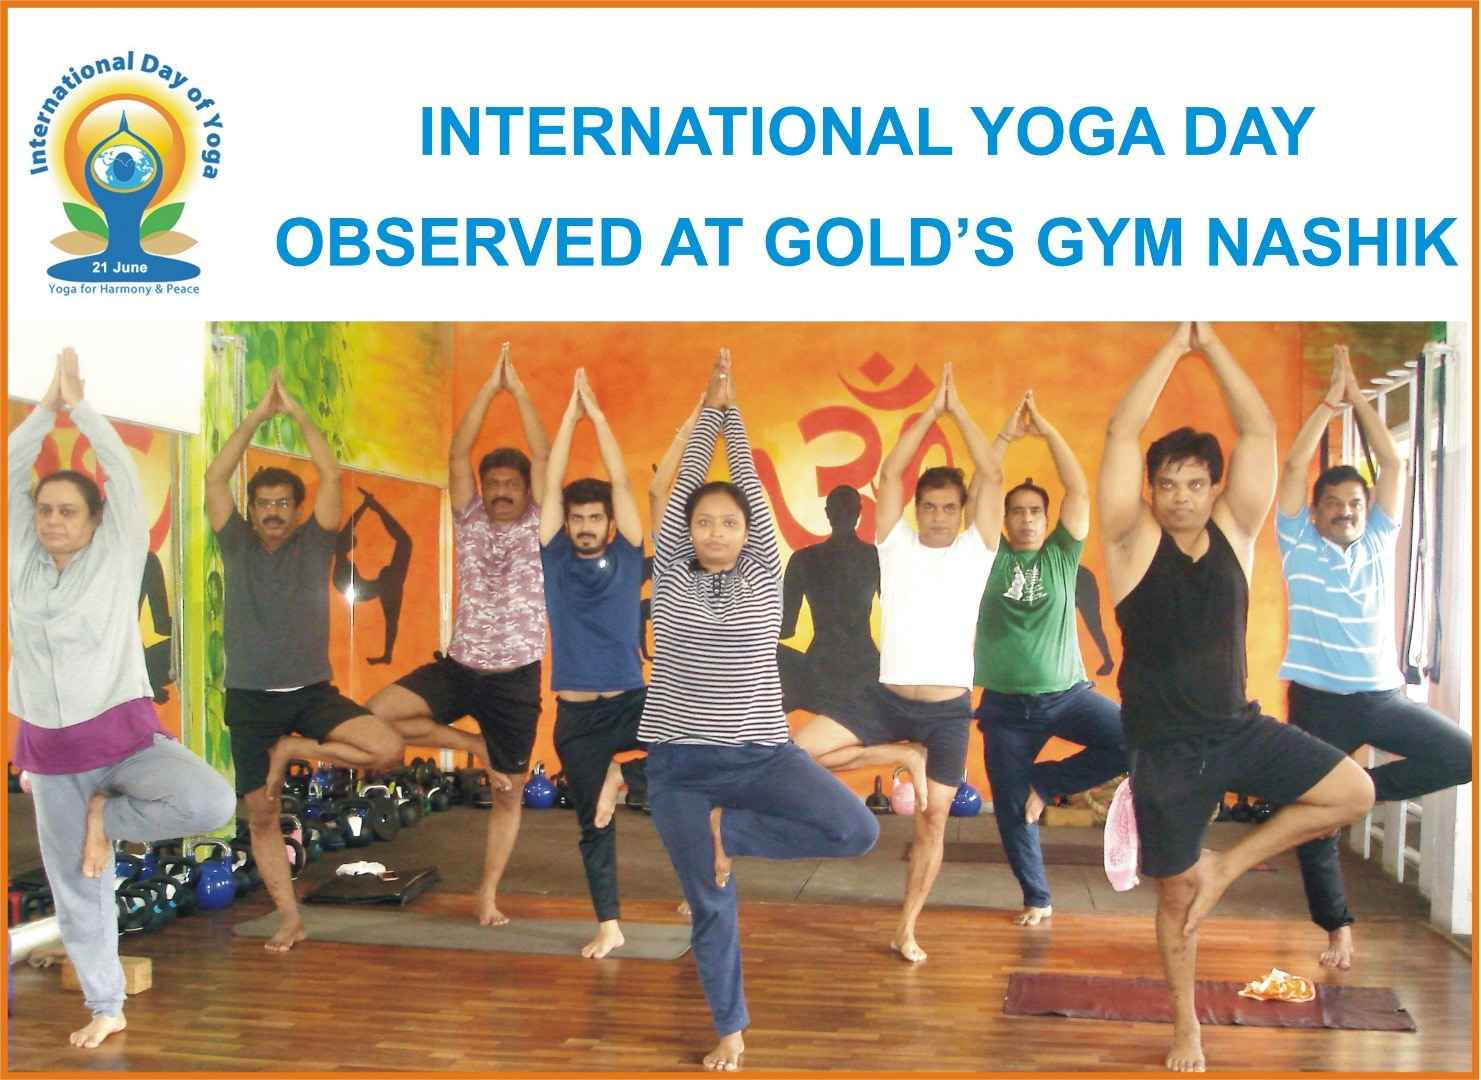 GOLD'S GYM | GOLDS GYM Nashik-Gold's Gym, Nashik was started on 1st